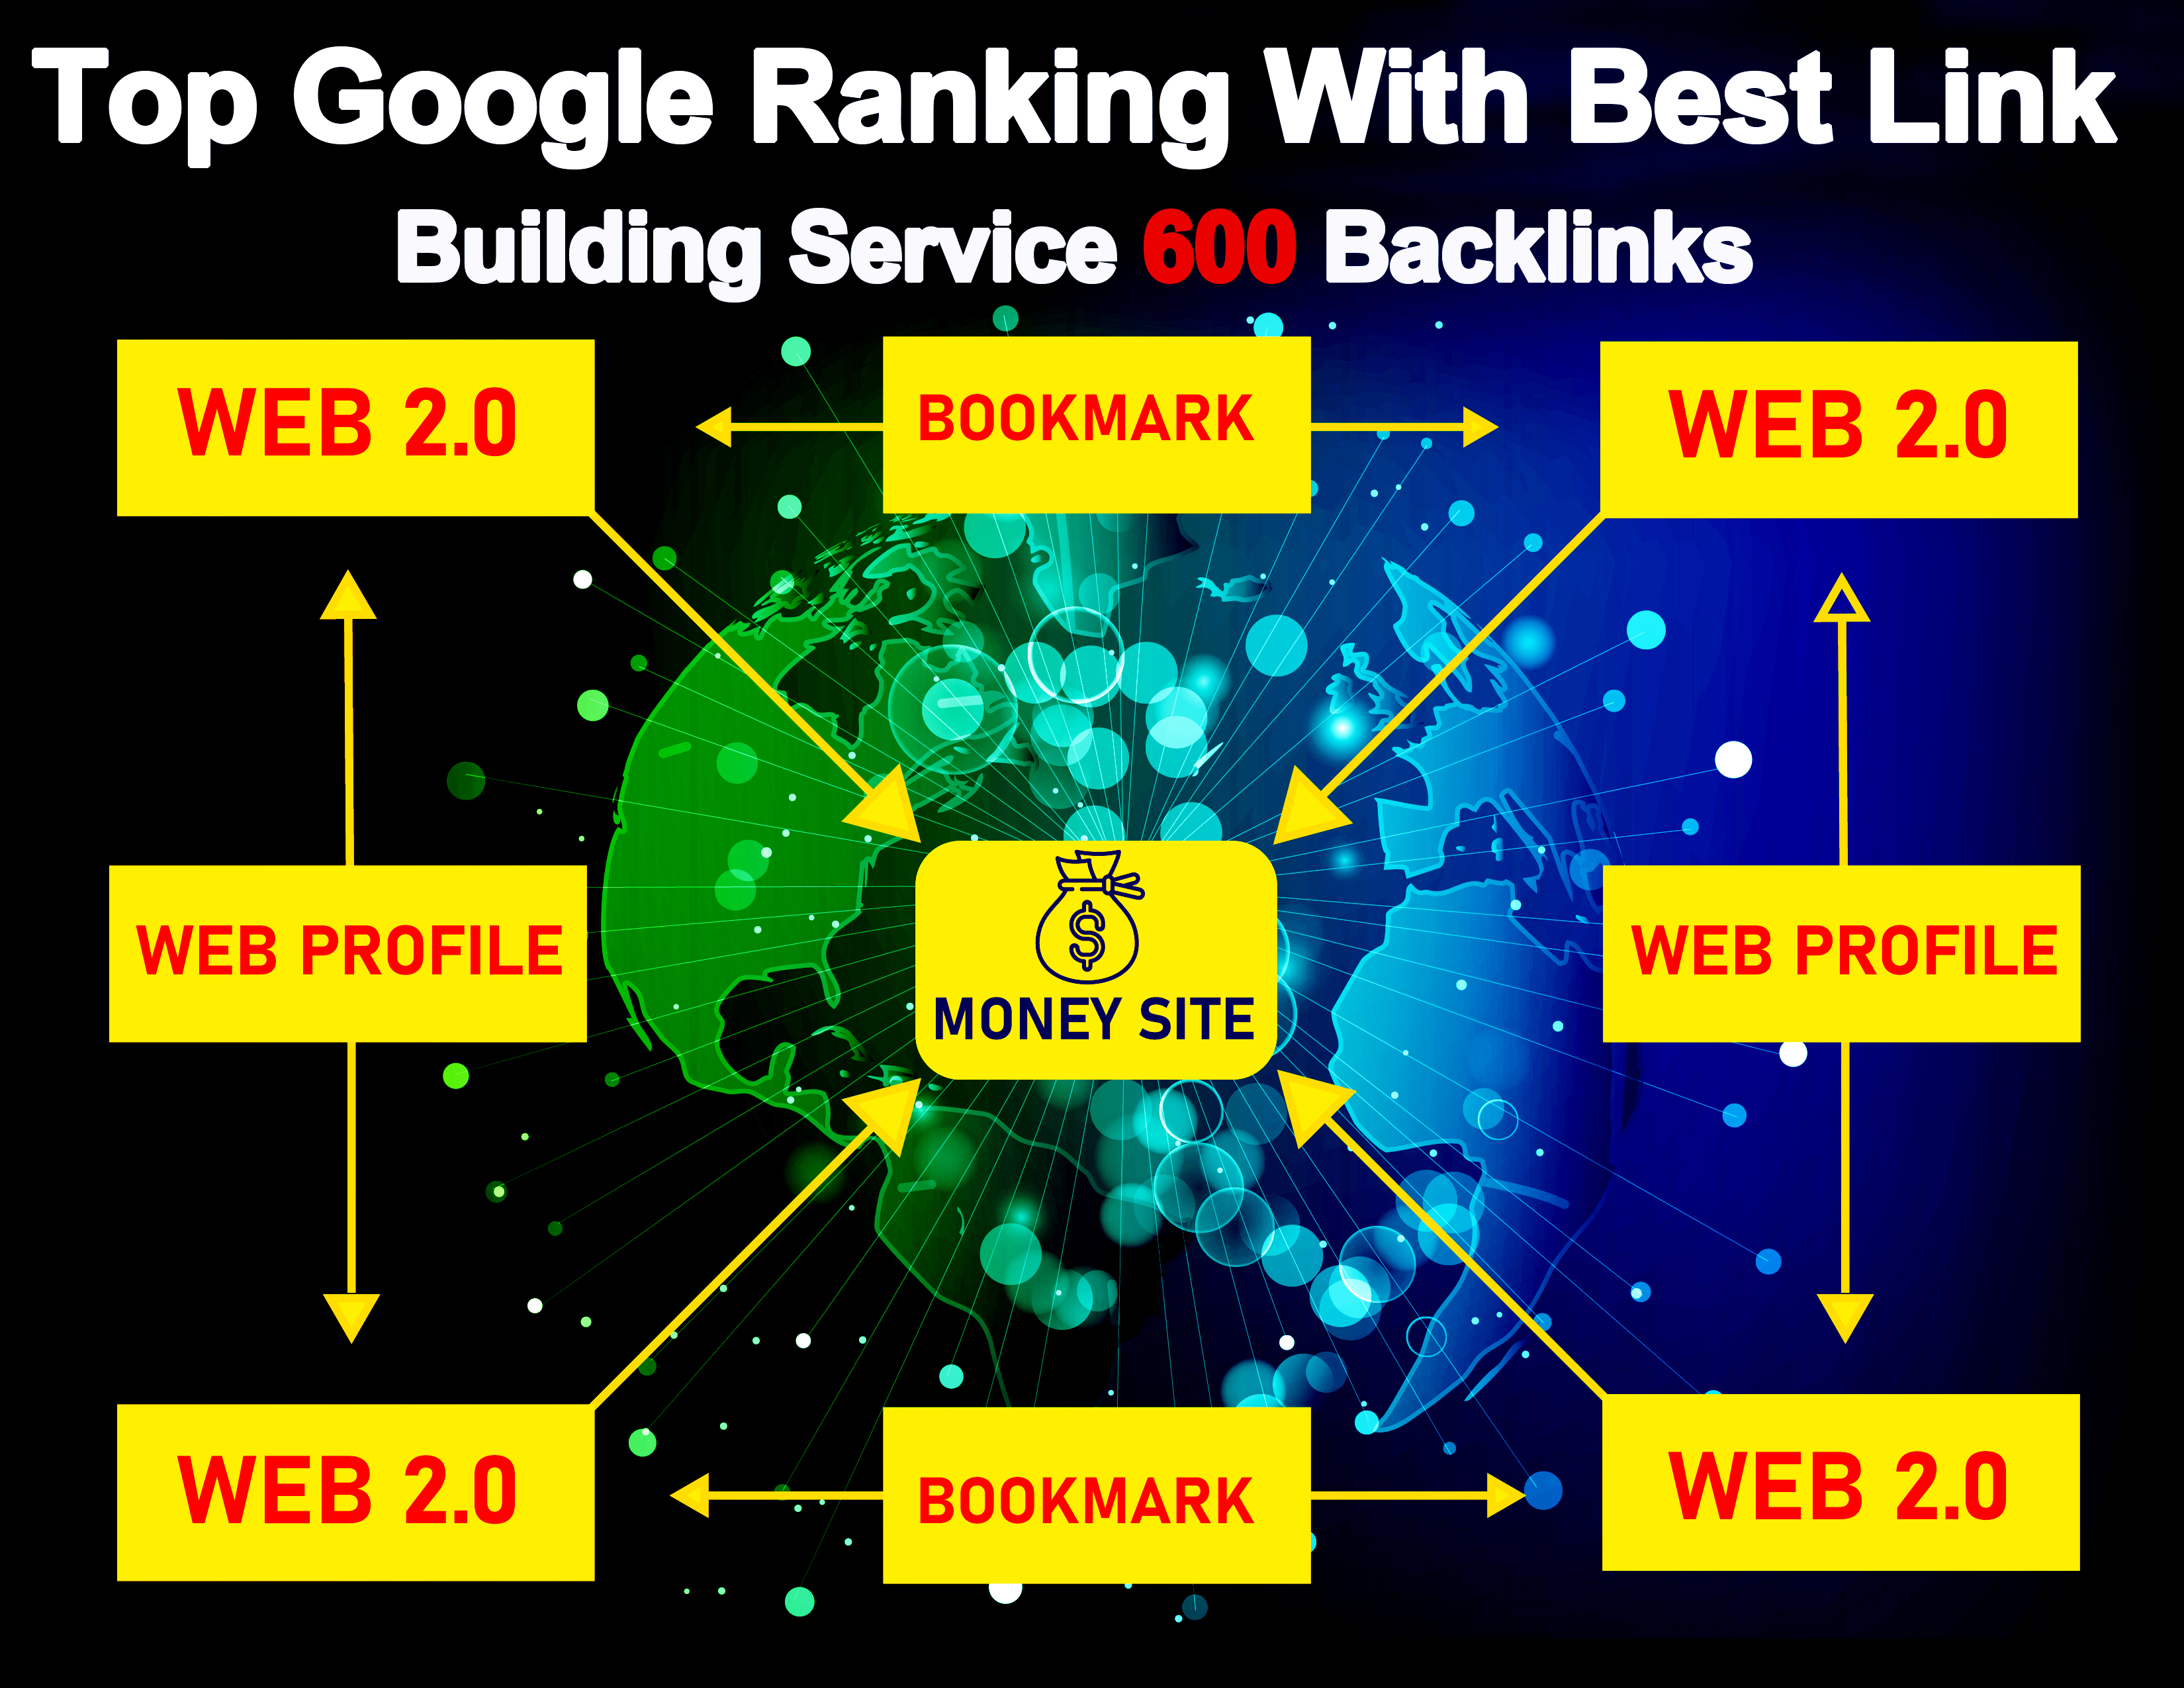 Top Google Ranking With Best Link Building Service 600 Backlinks